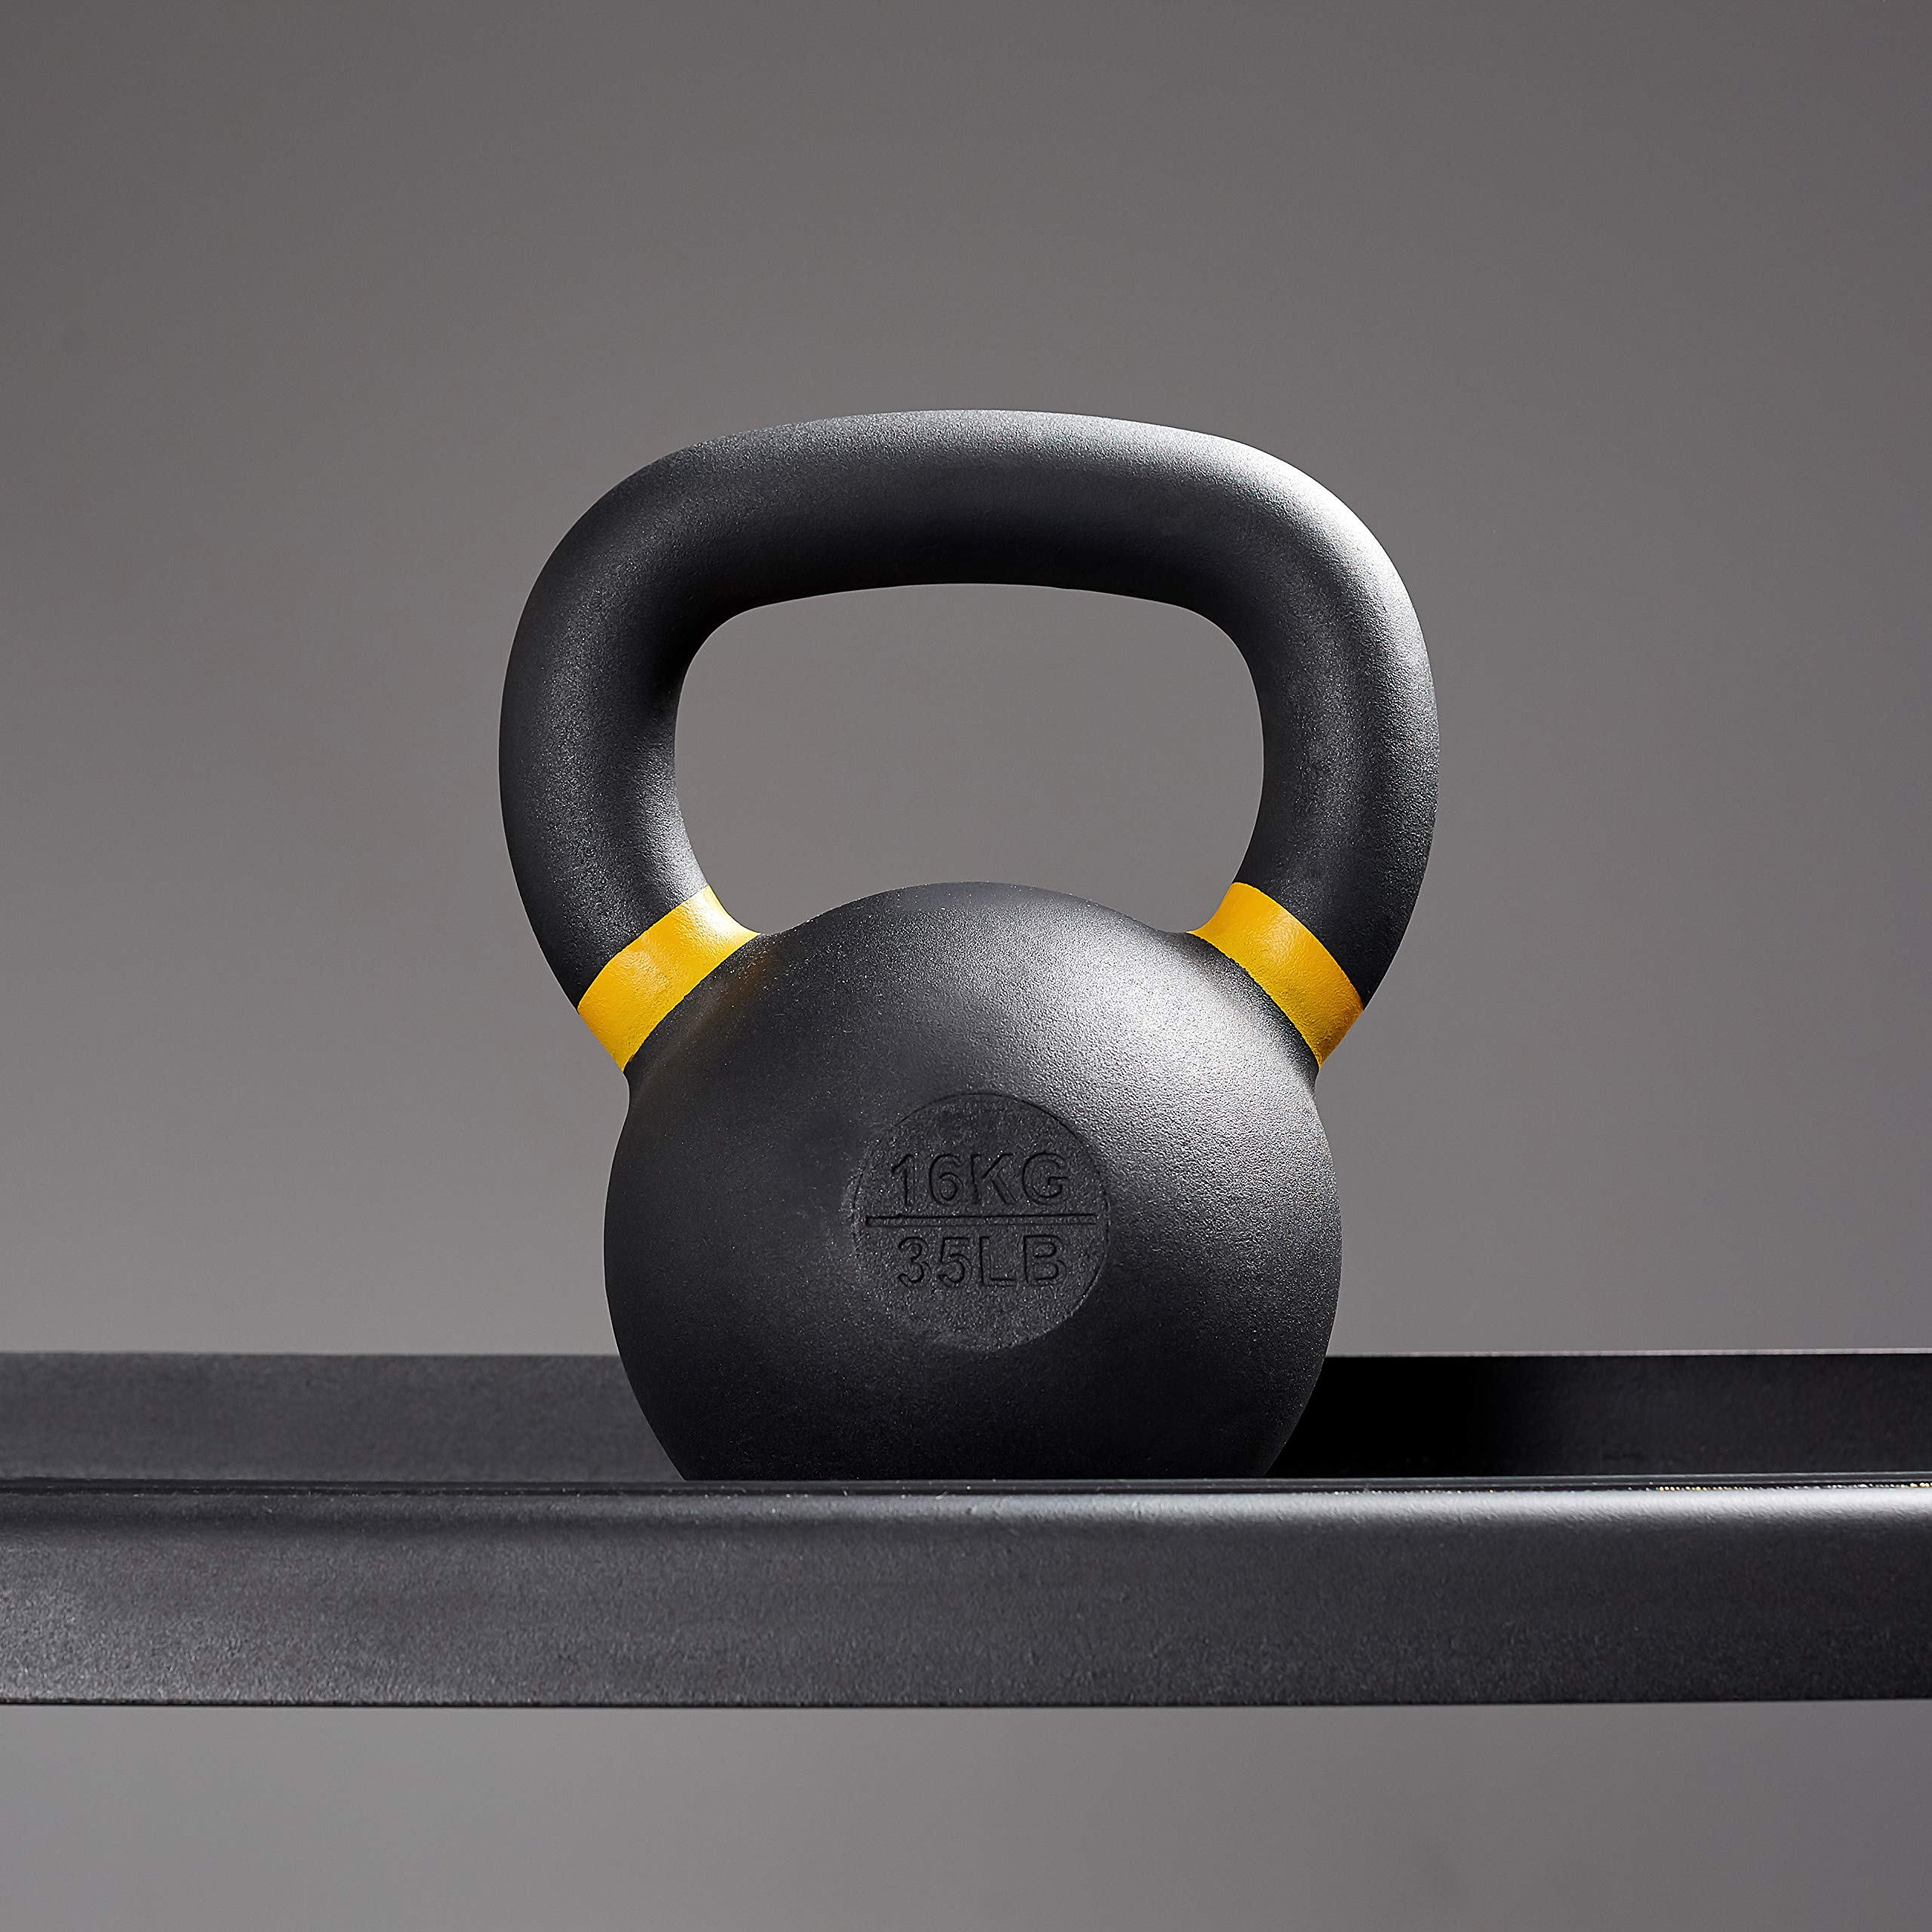 Rep 16 kg Kettlebell for Strength and Conditioning by Rep Fitness (Image #3)